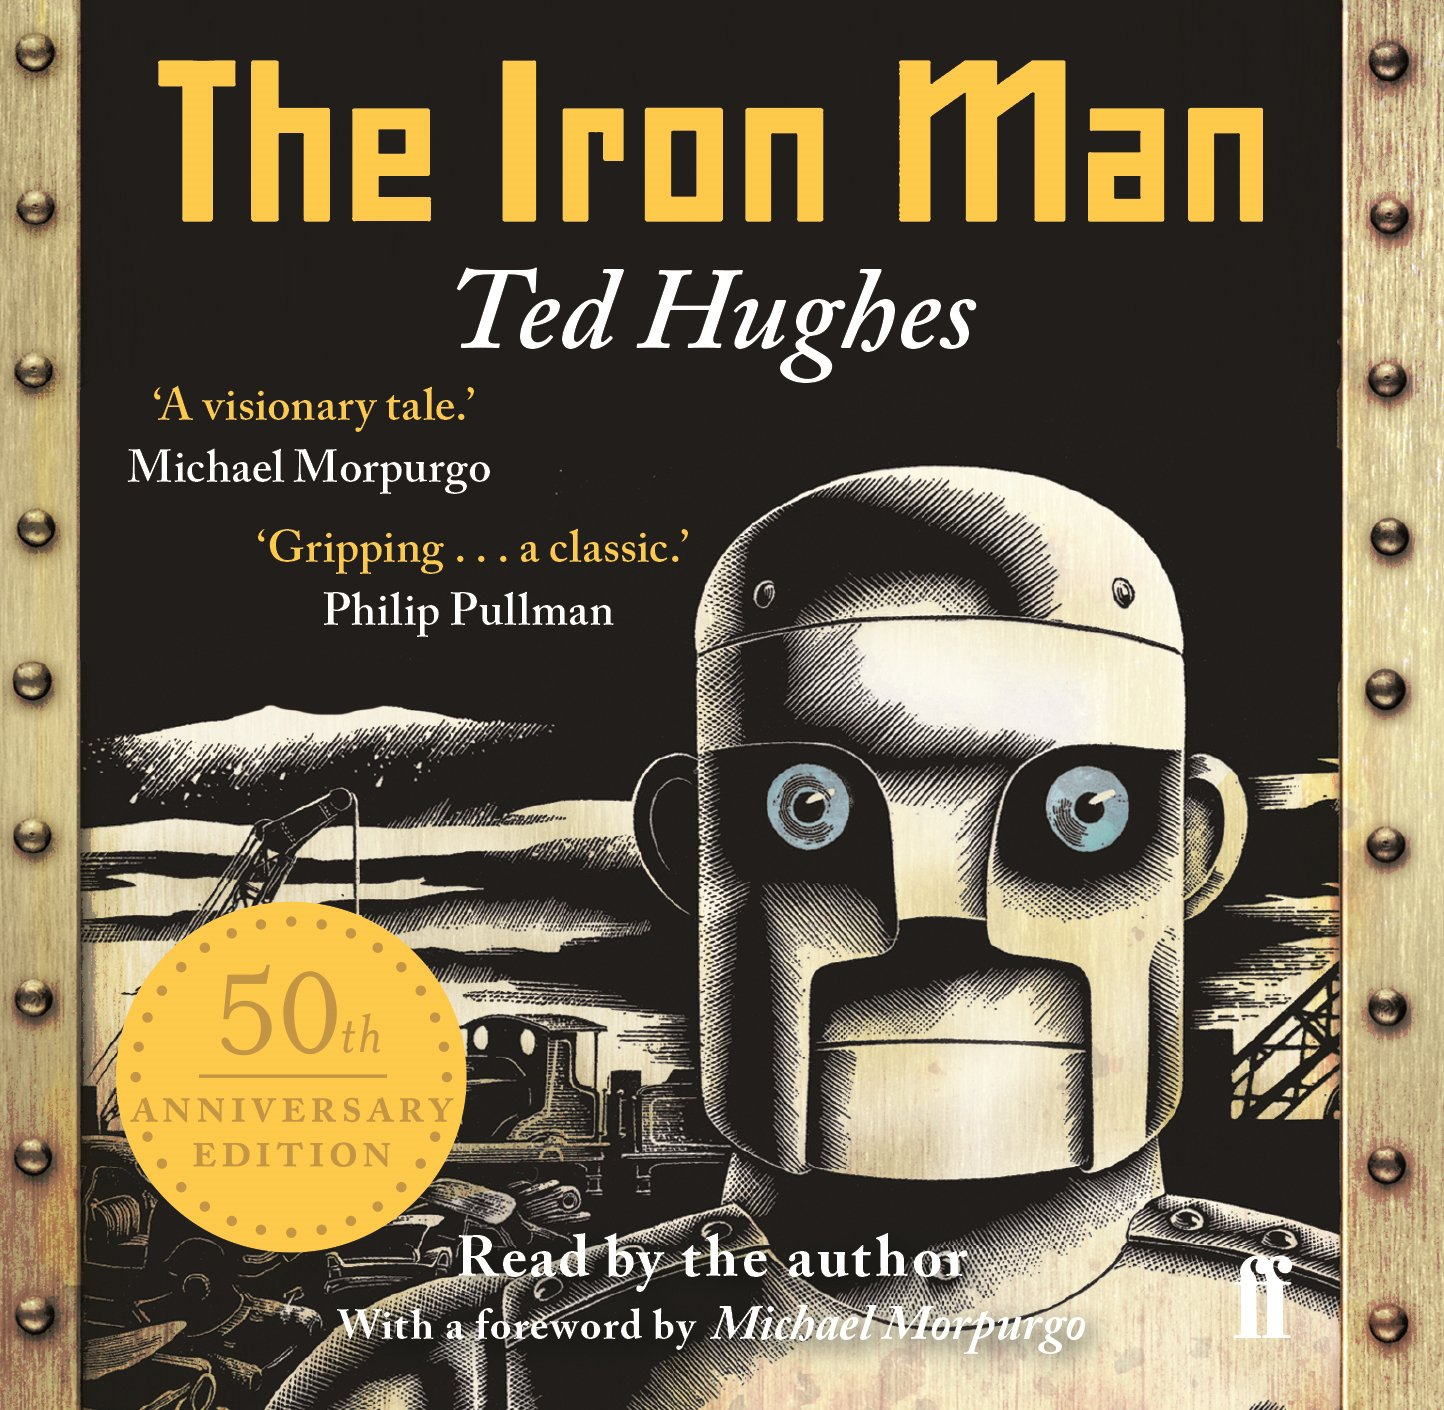 Image result for the iron man ted hughes